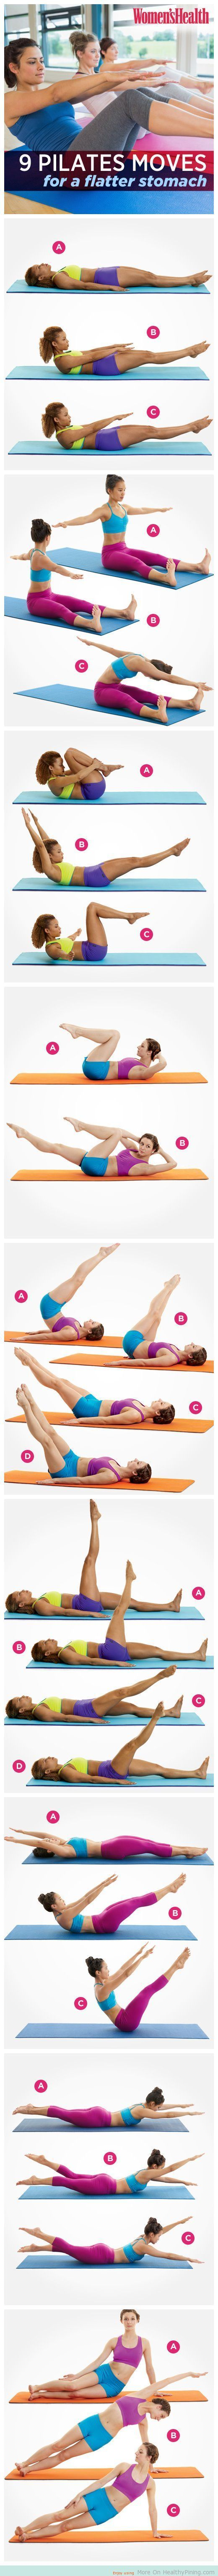 9 Pilates Moves For A Flatter Stomach - Healthy Pining